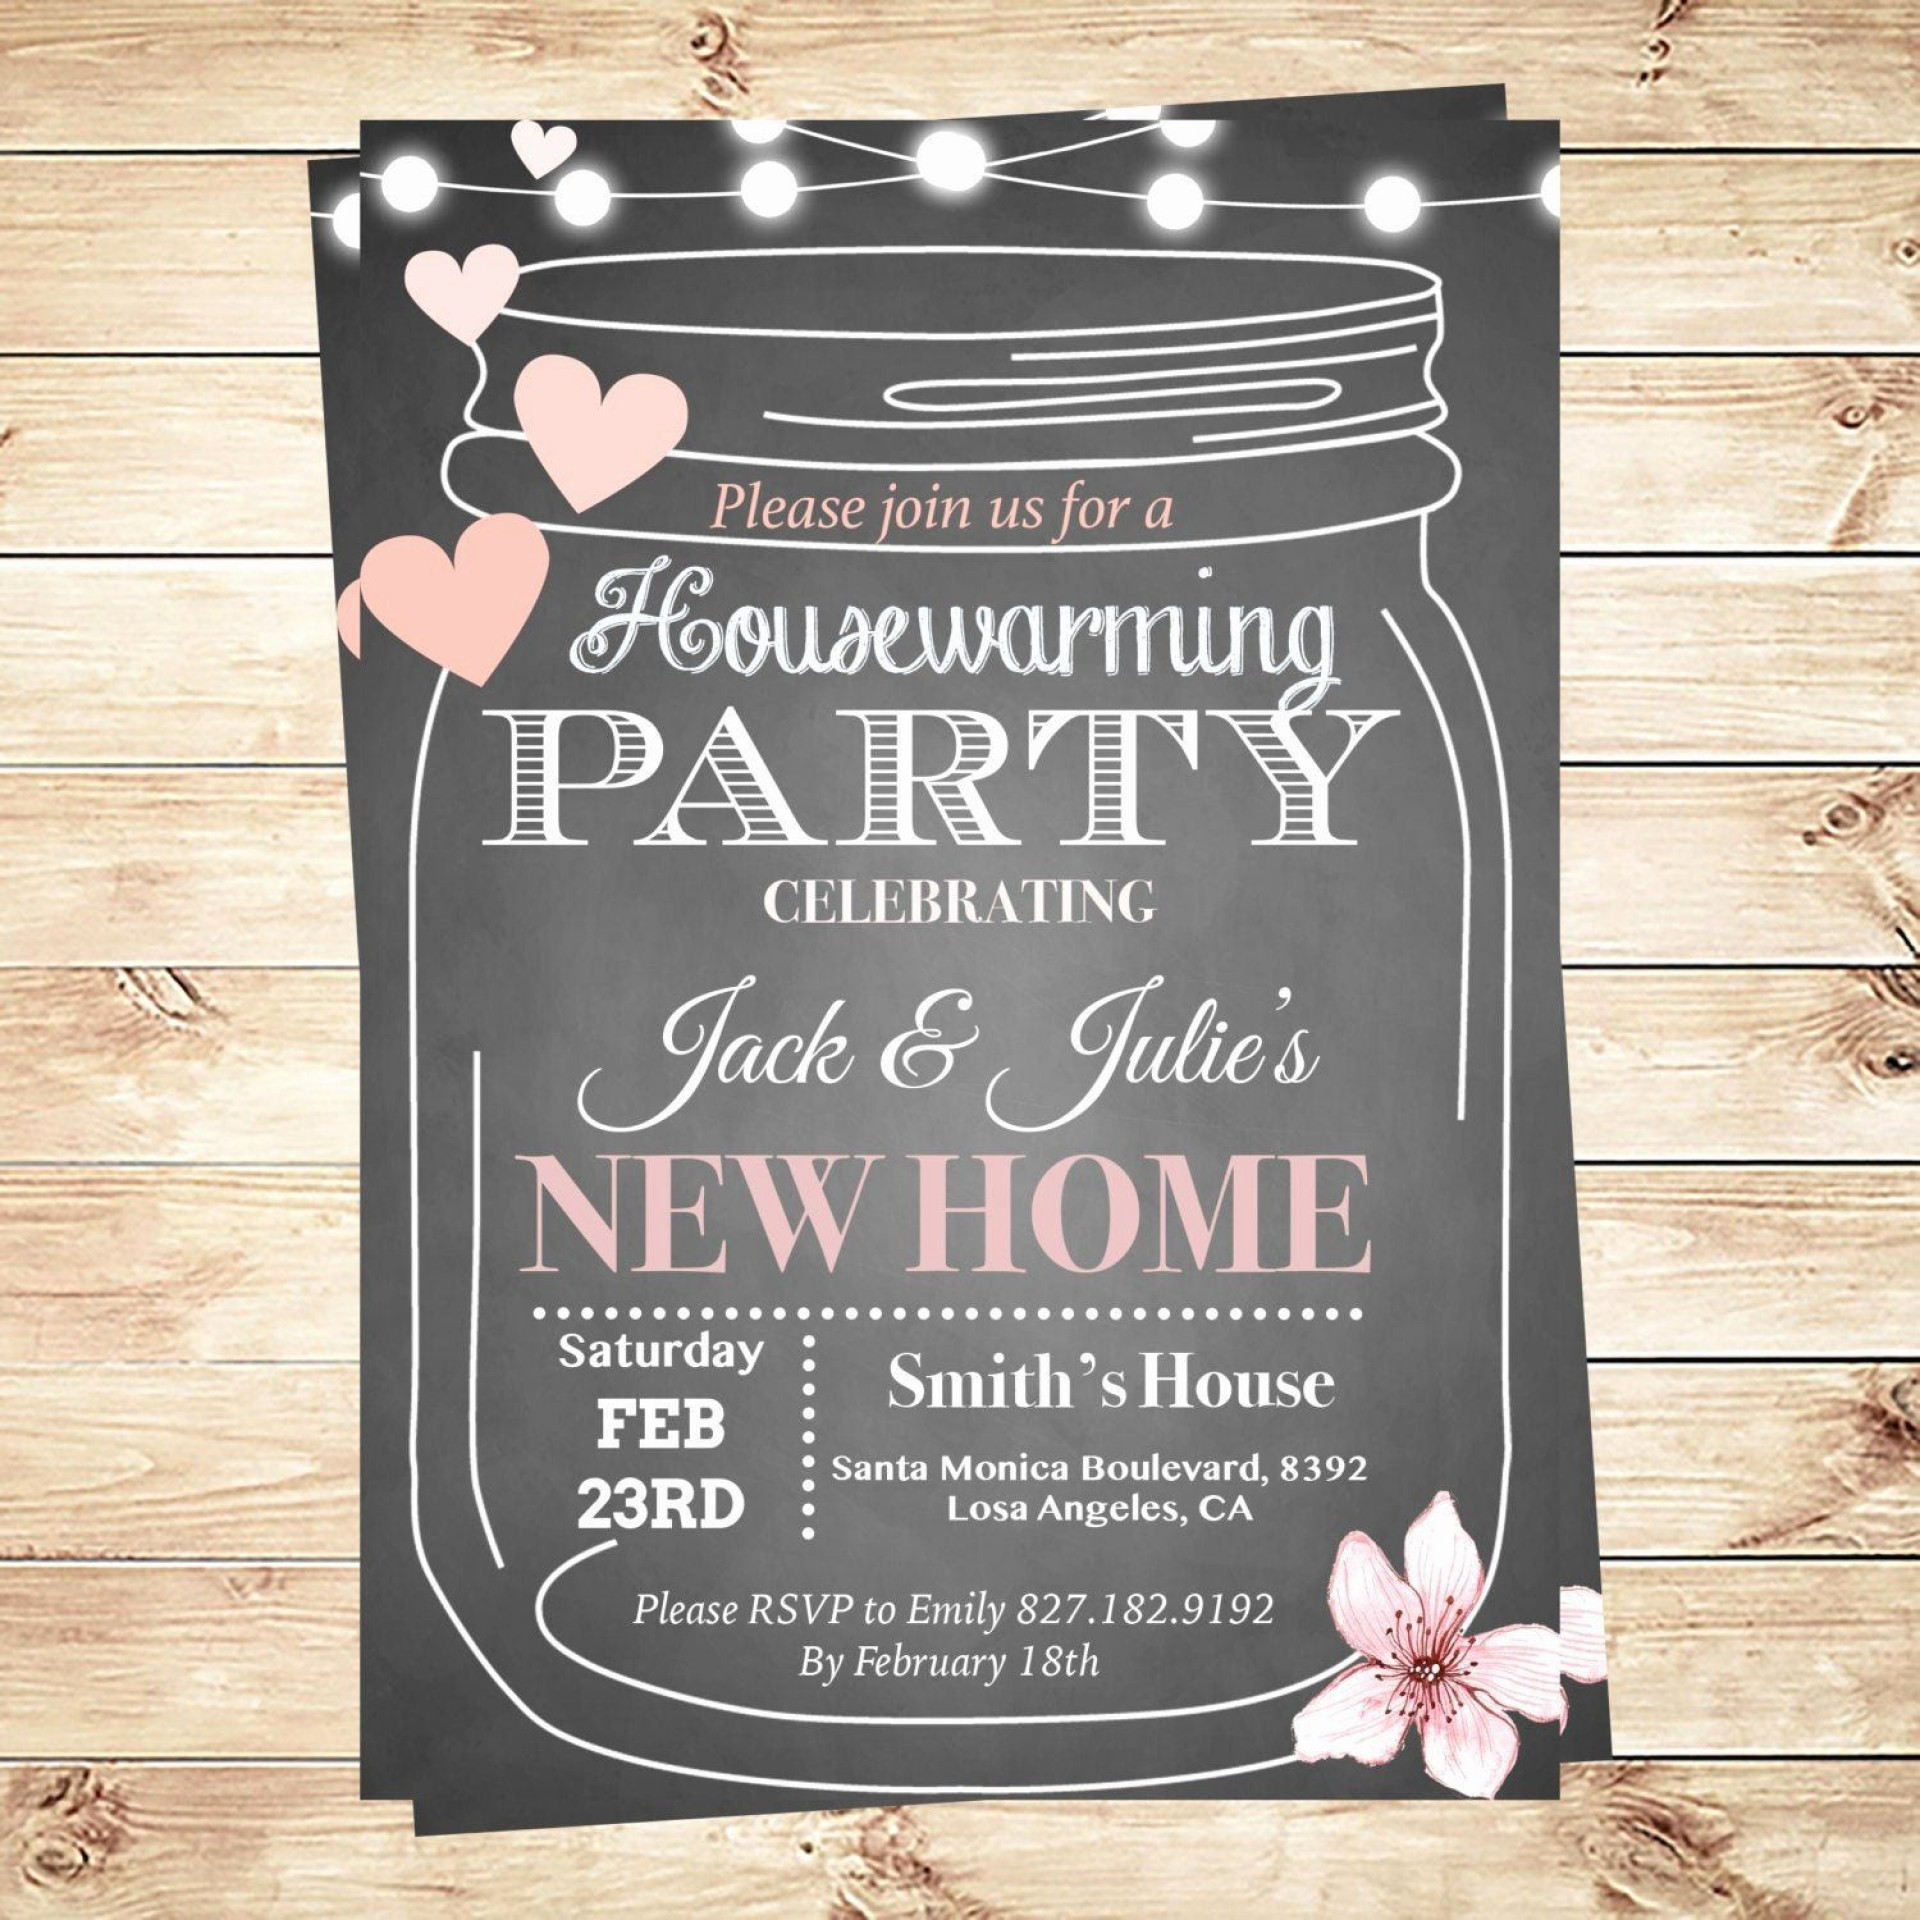 002 Magnificent Housewarming Party Invitation Template Design  Templates Free Download Card1920